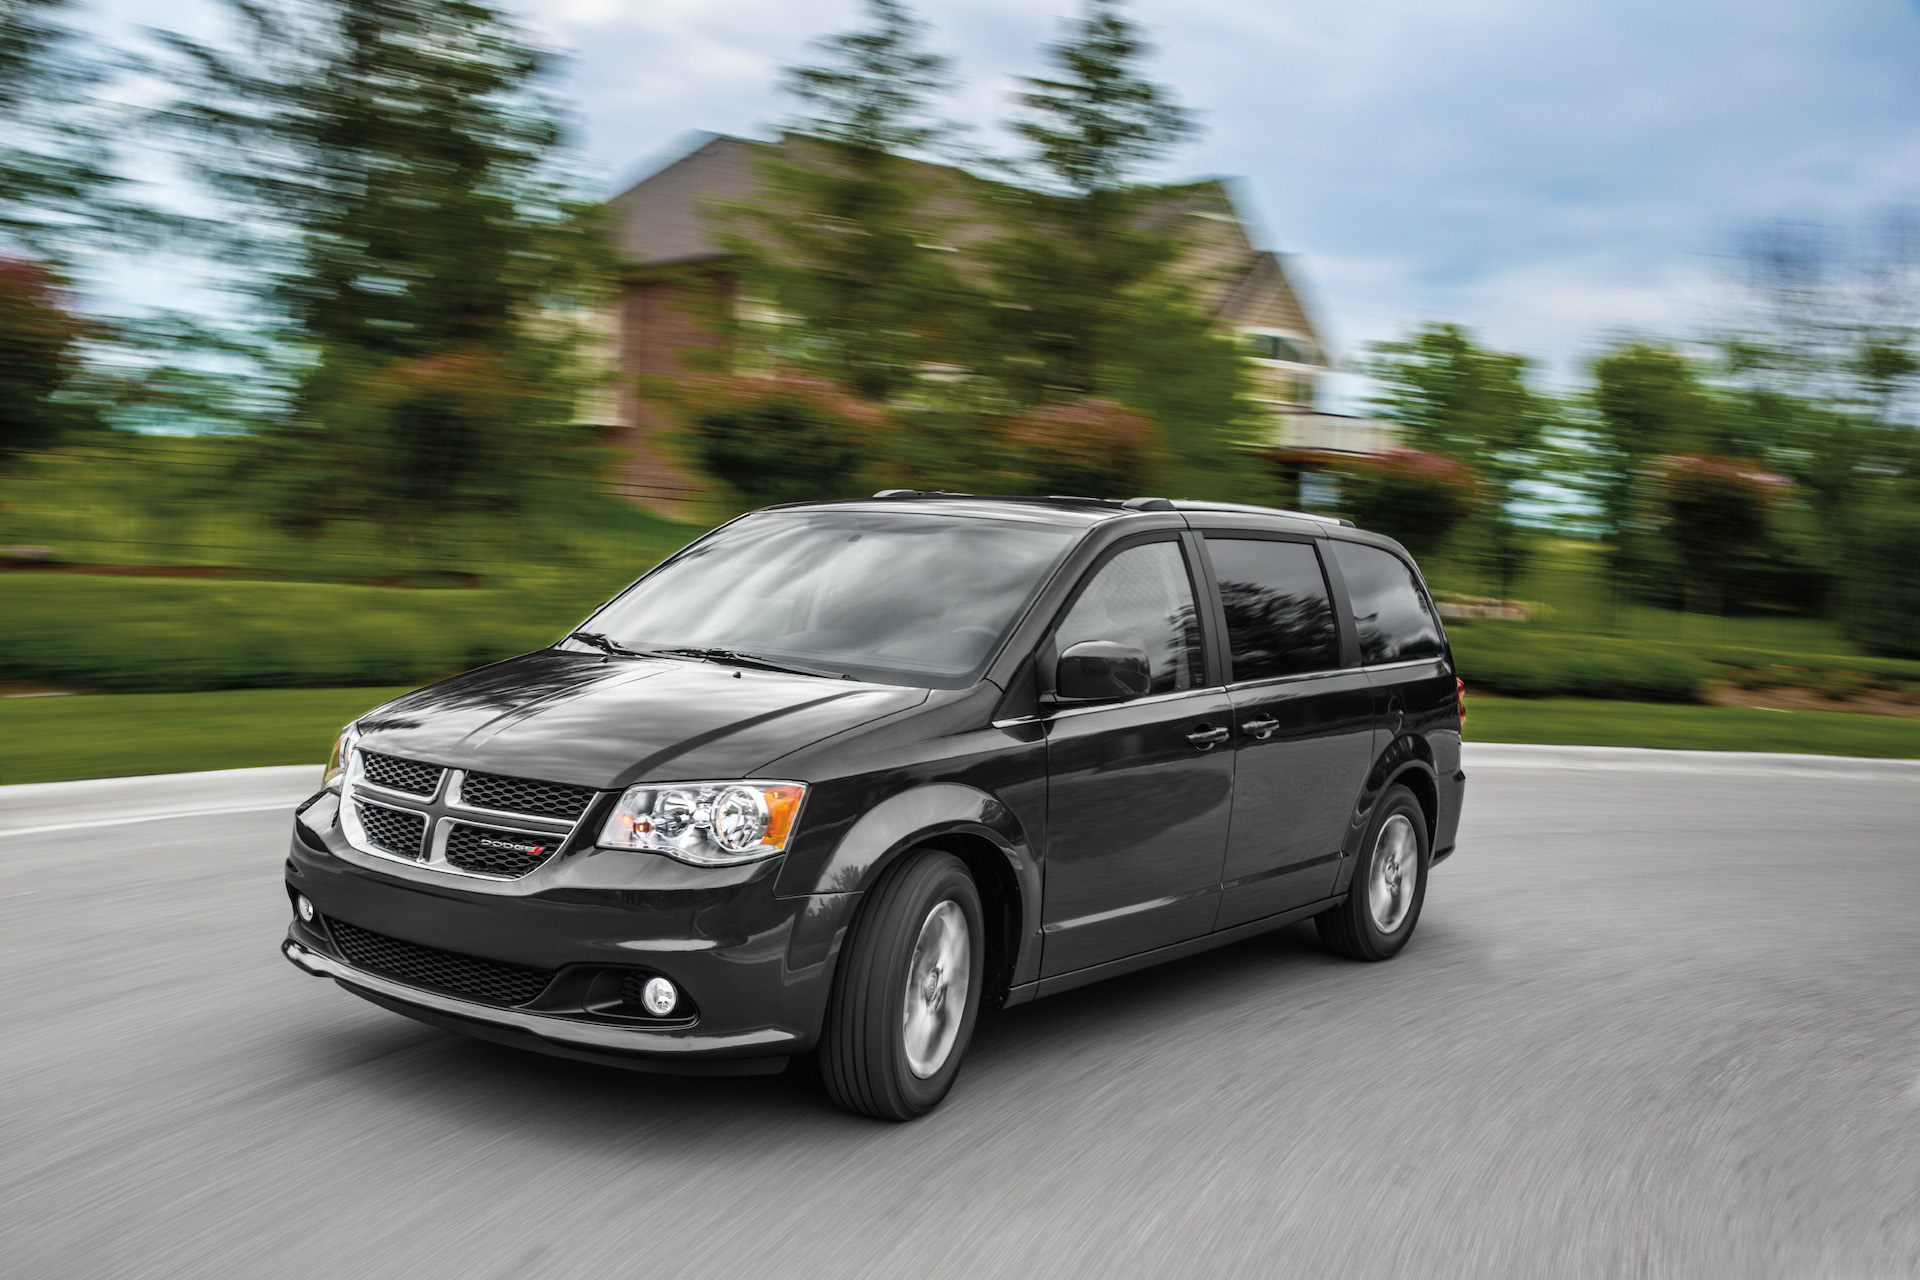 2020 Dodge Grand Caravan Review Ratings Specs Prices And Photos The Car Connection